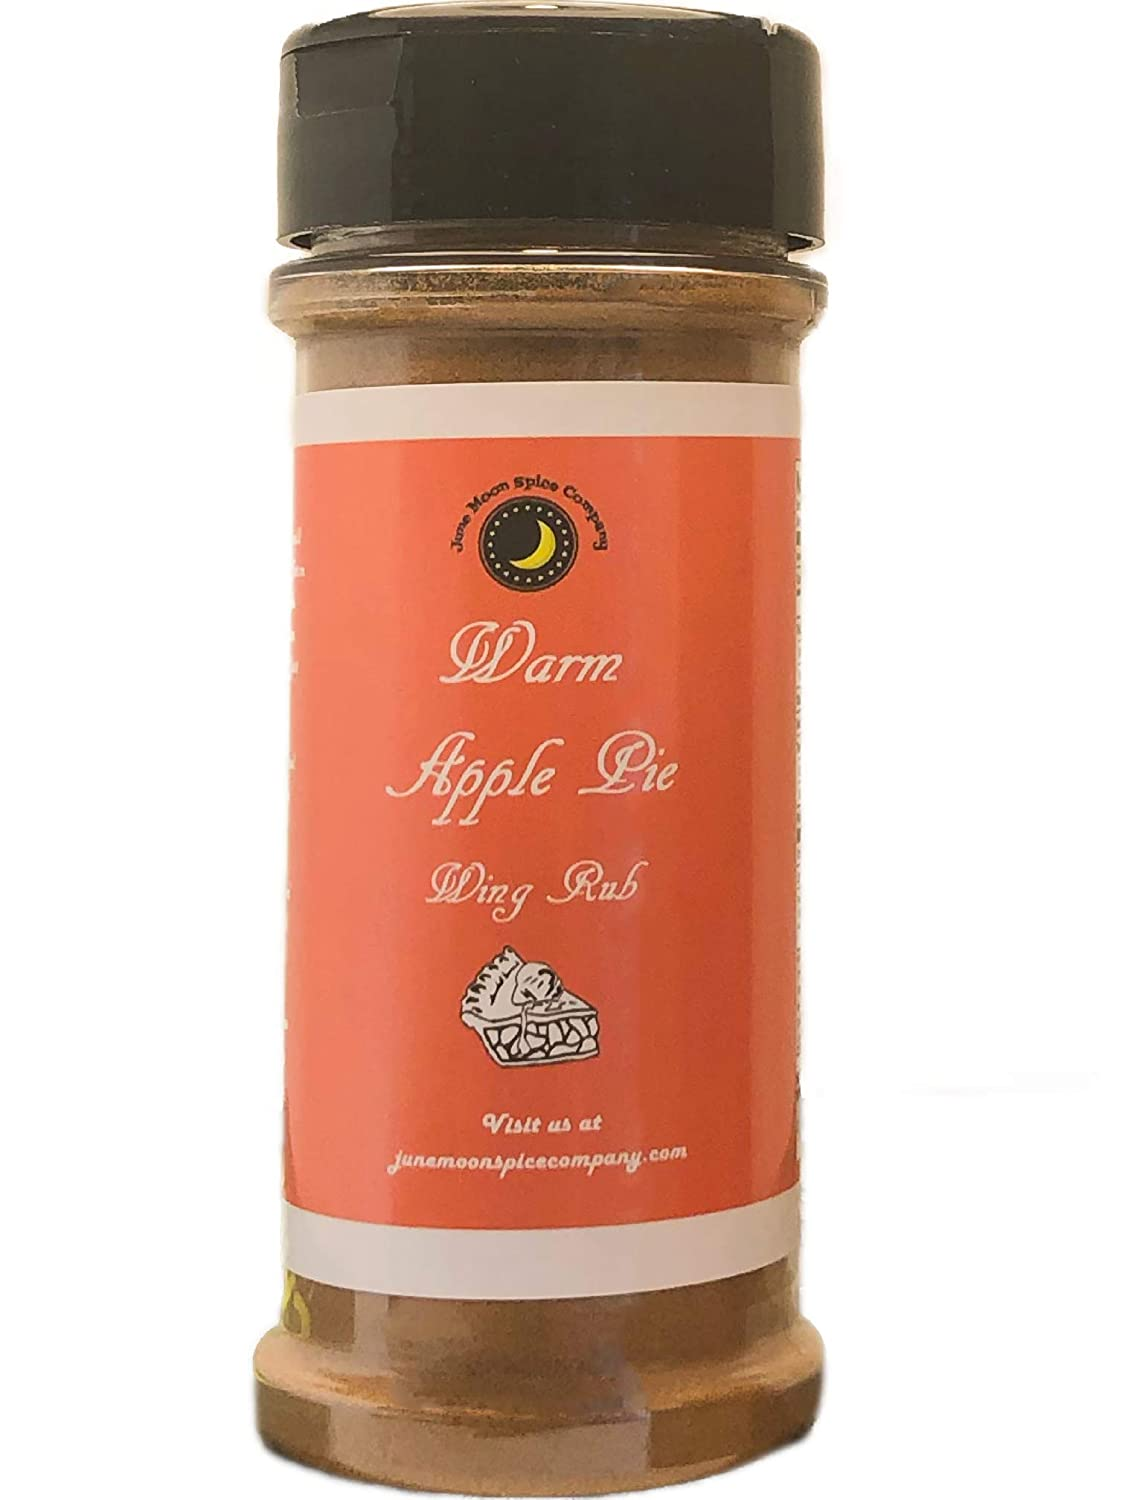 Premium | Warm APPLE PIE Chicken and Pork Dry Rub | Crafted in Small Batches with Farm Fresh SPICES for Premium Flavor and Zest